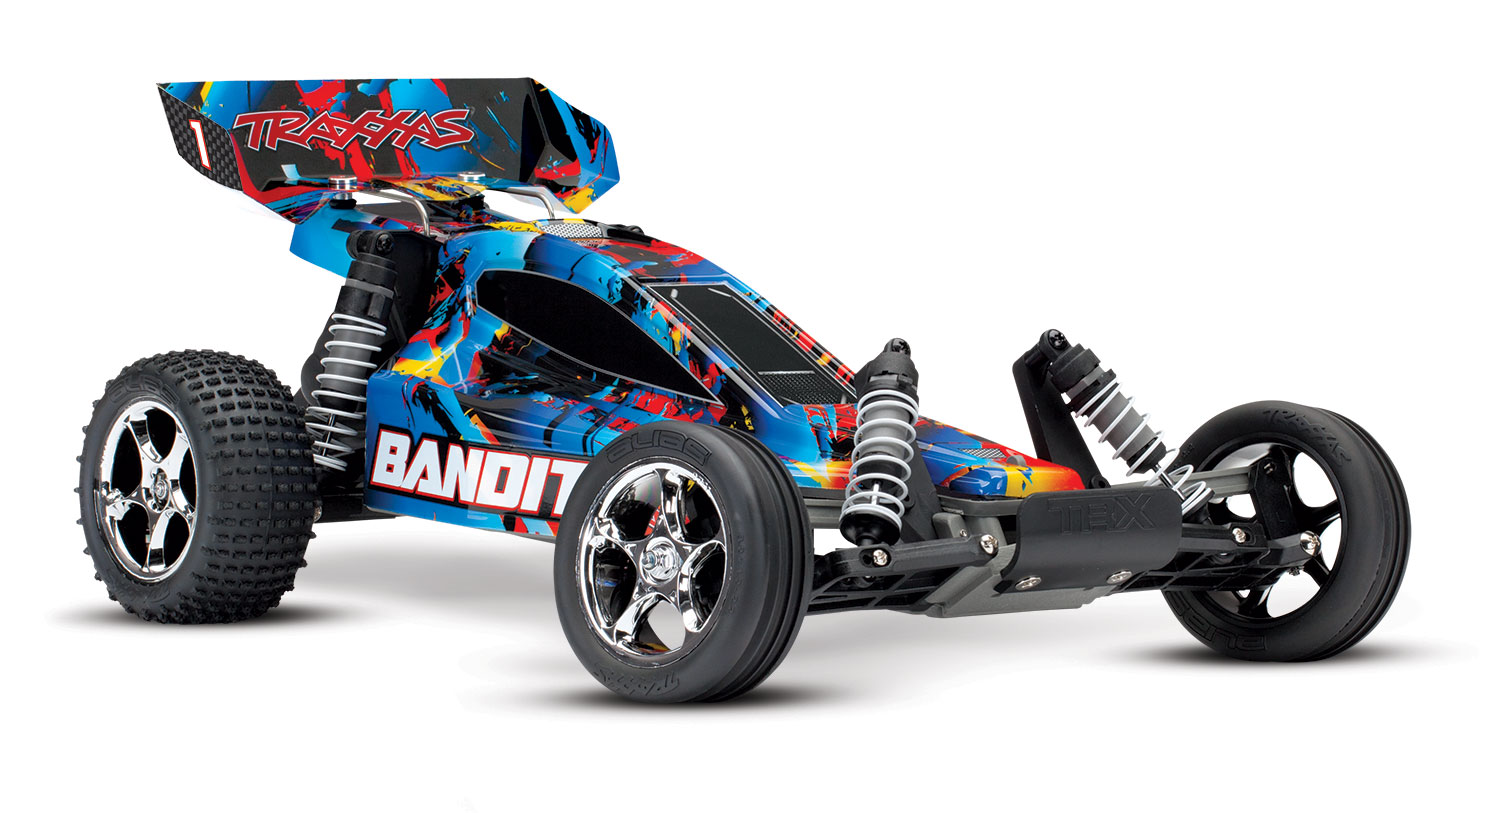 A New Look And Lower Price For Rustler Bandit Traxxas Vxl Parts List